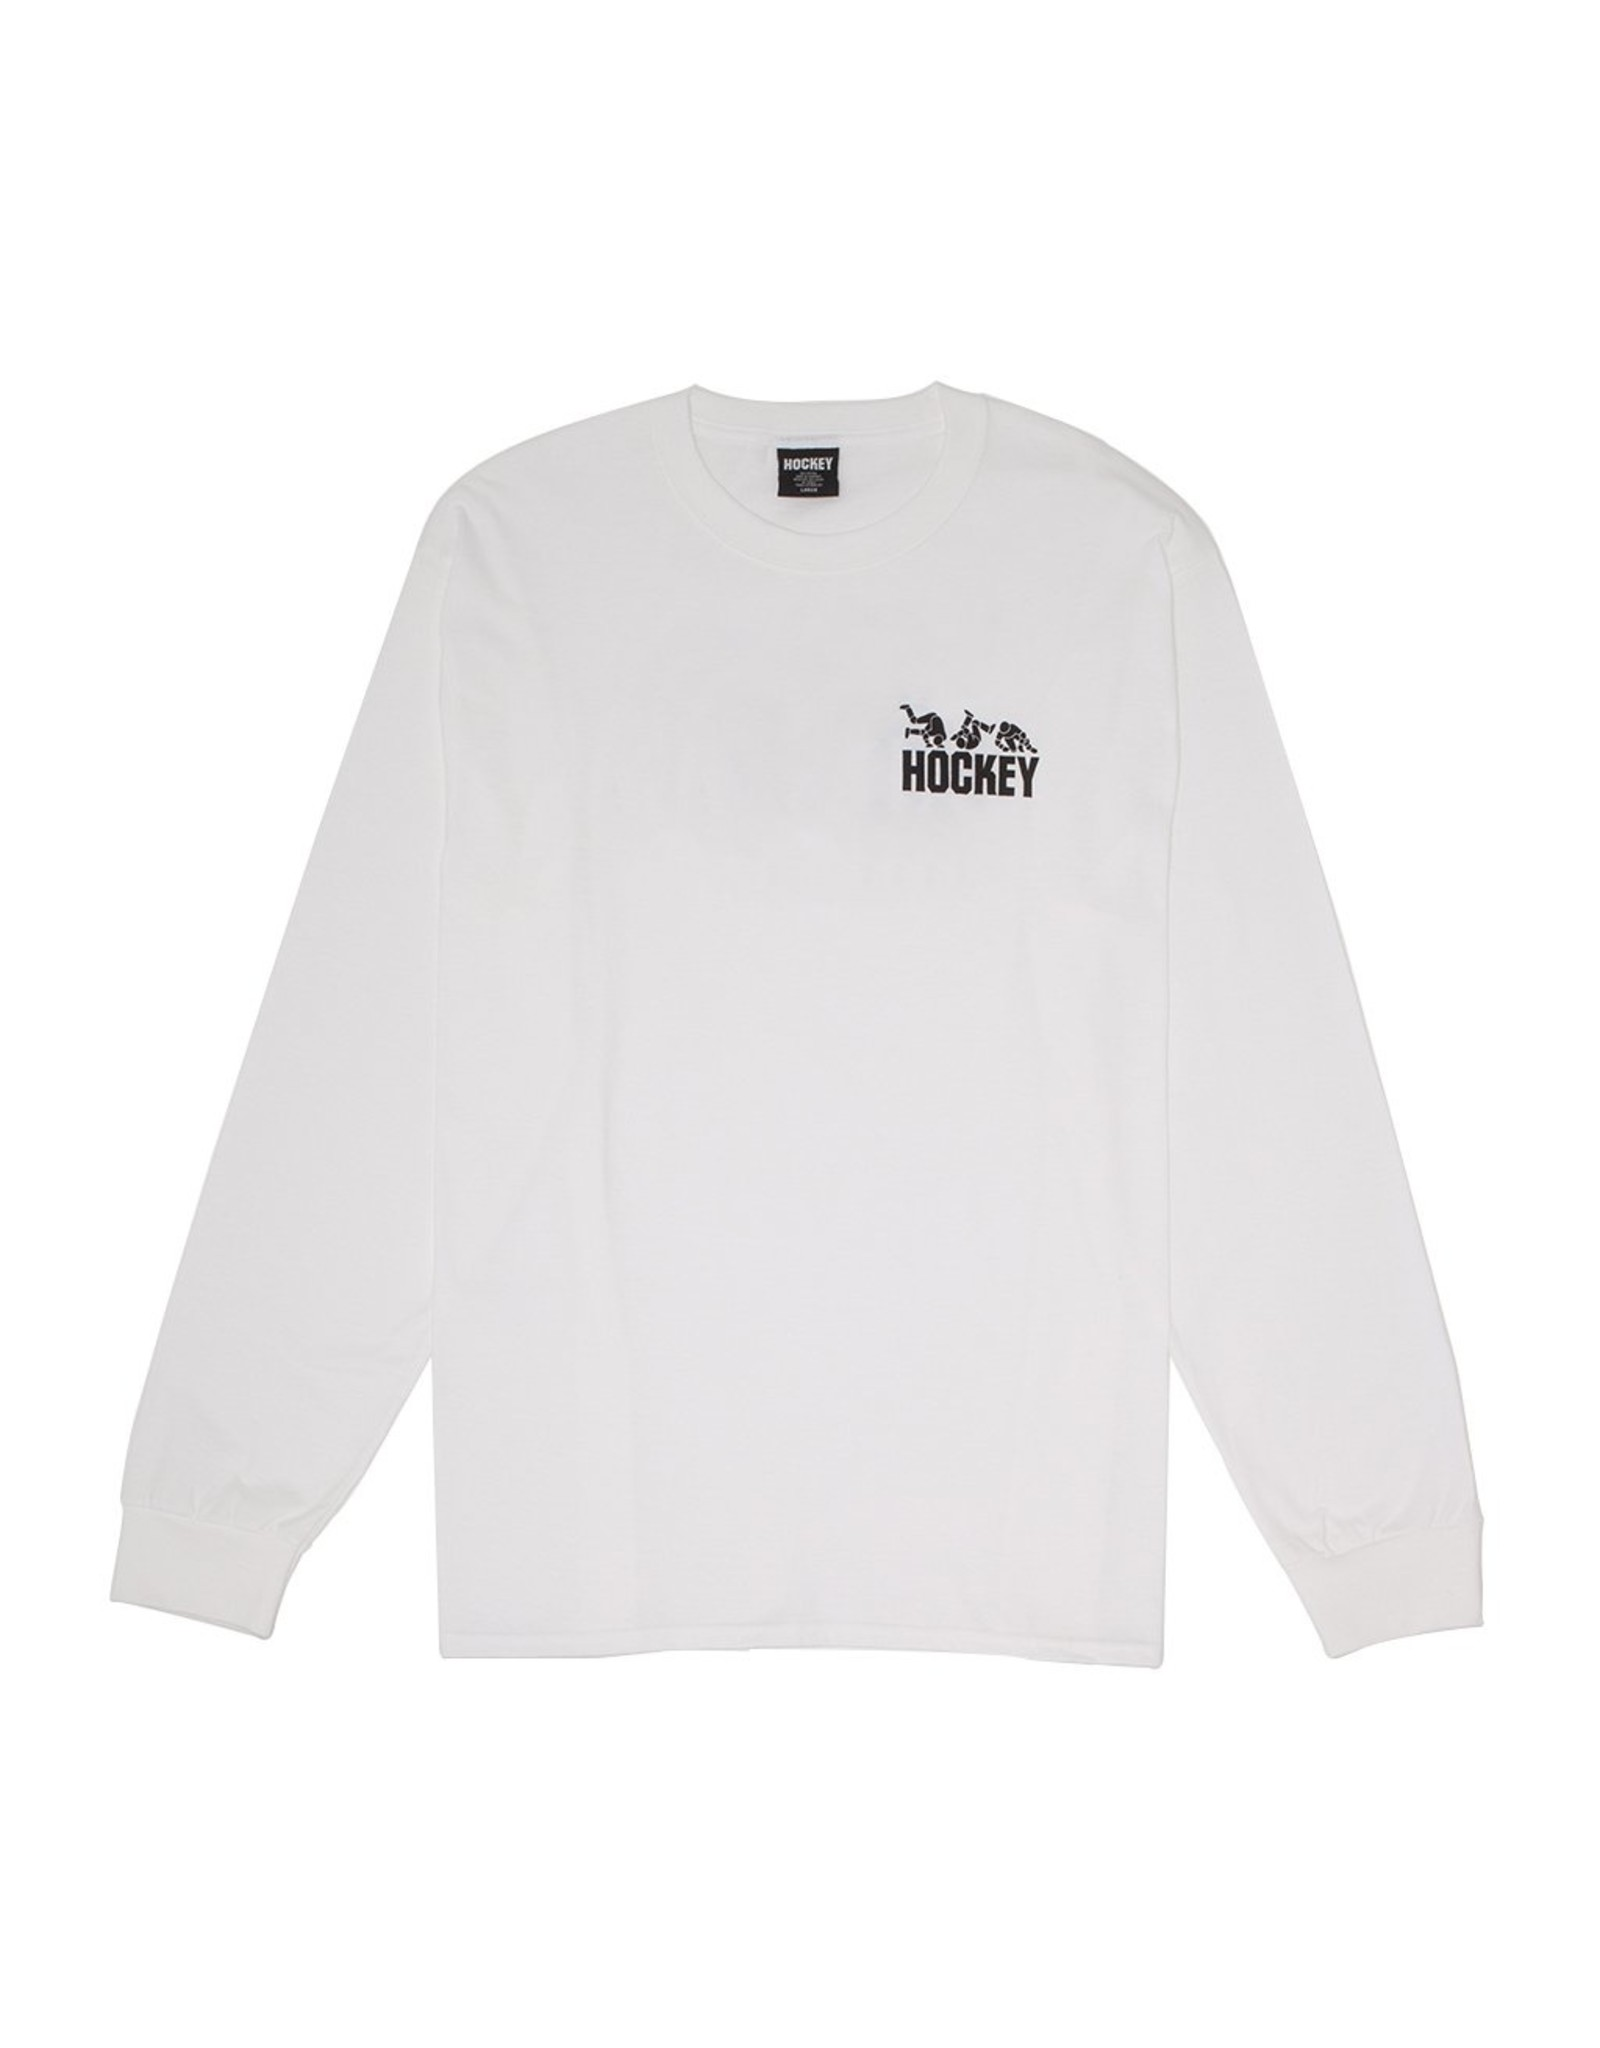 HOCKEY HOCKEY - FALL GUY LONGSLEEVE - WHITE